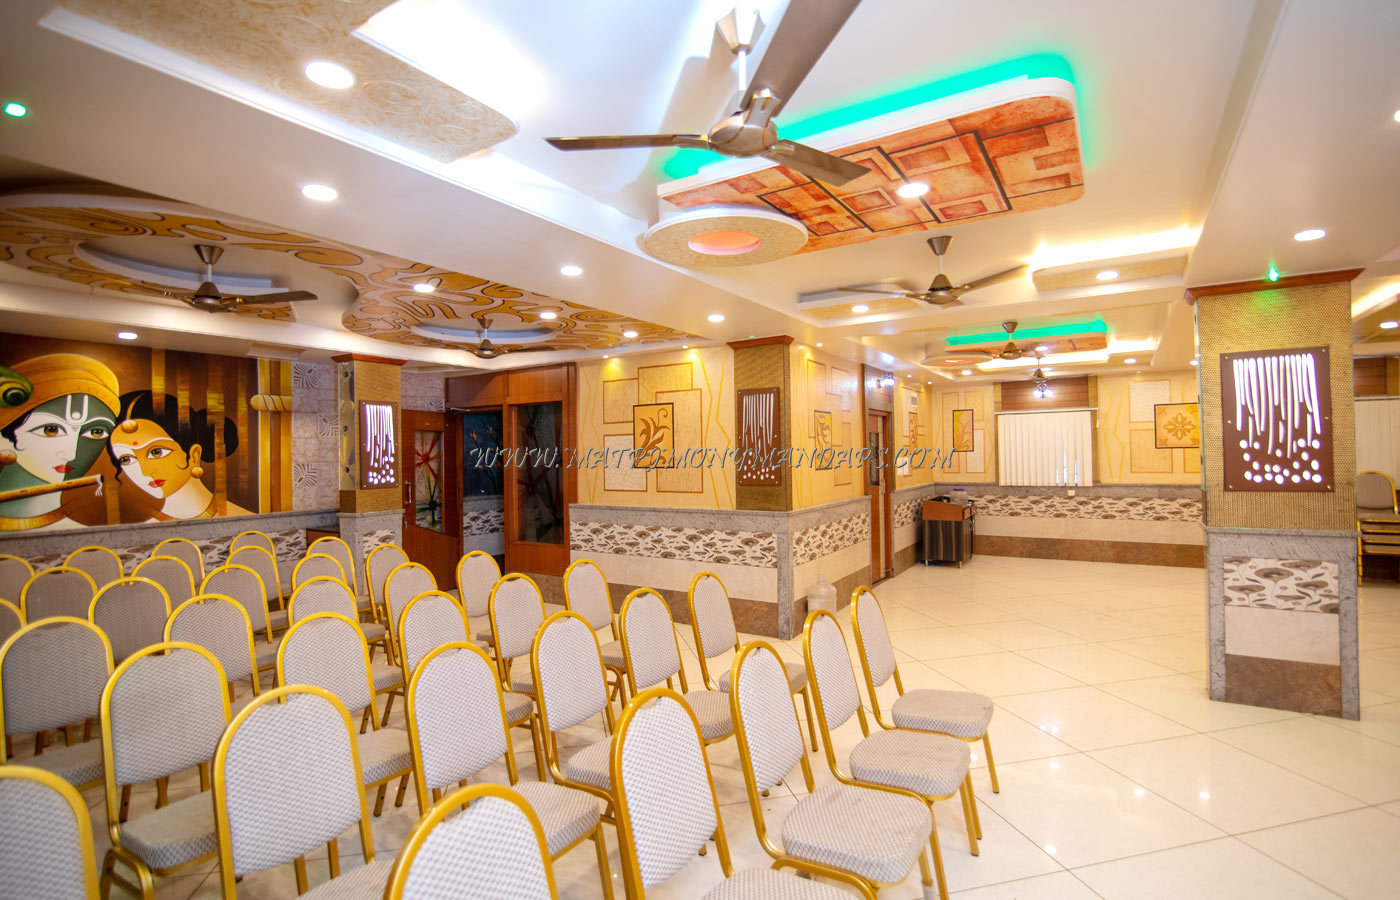 Find the availability of the Sri Matha Sagar Party Hall in Electronic City, Bangalore and avail special offers